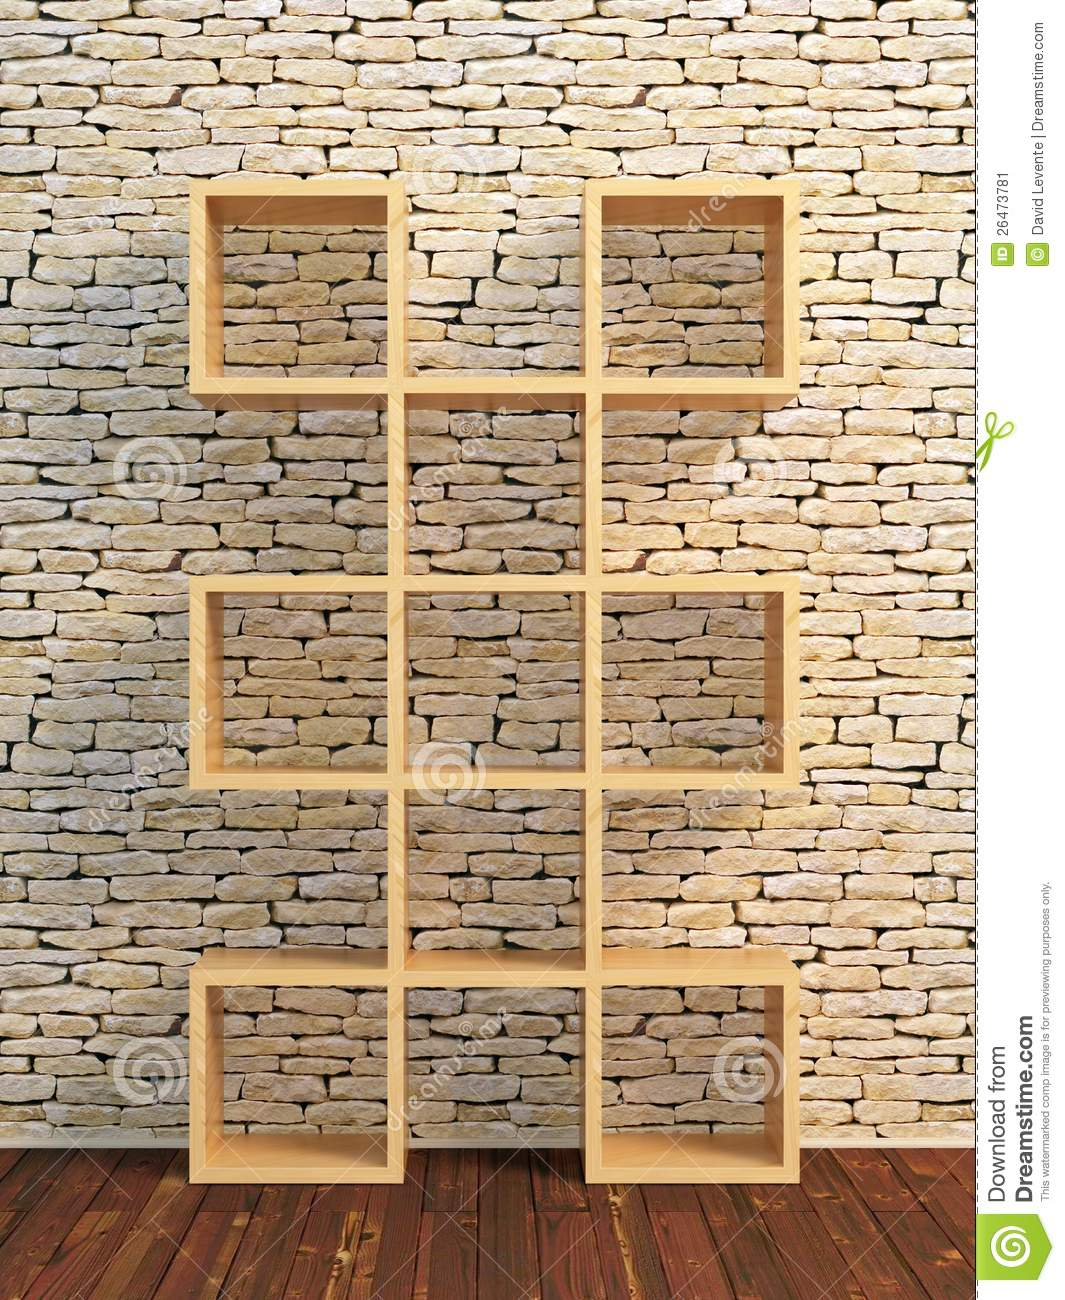 ... 3d illustration of modern wooden bookshelf against ston brick wall